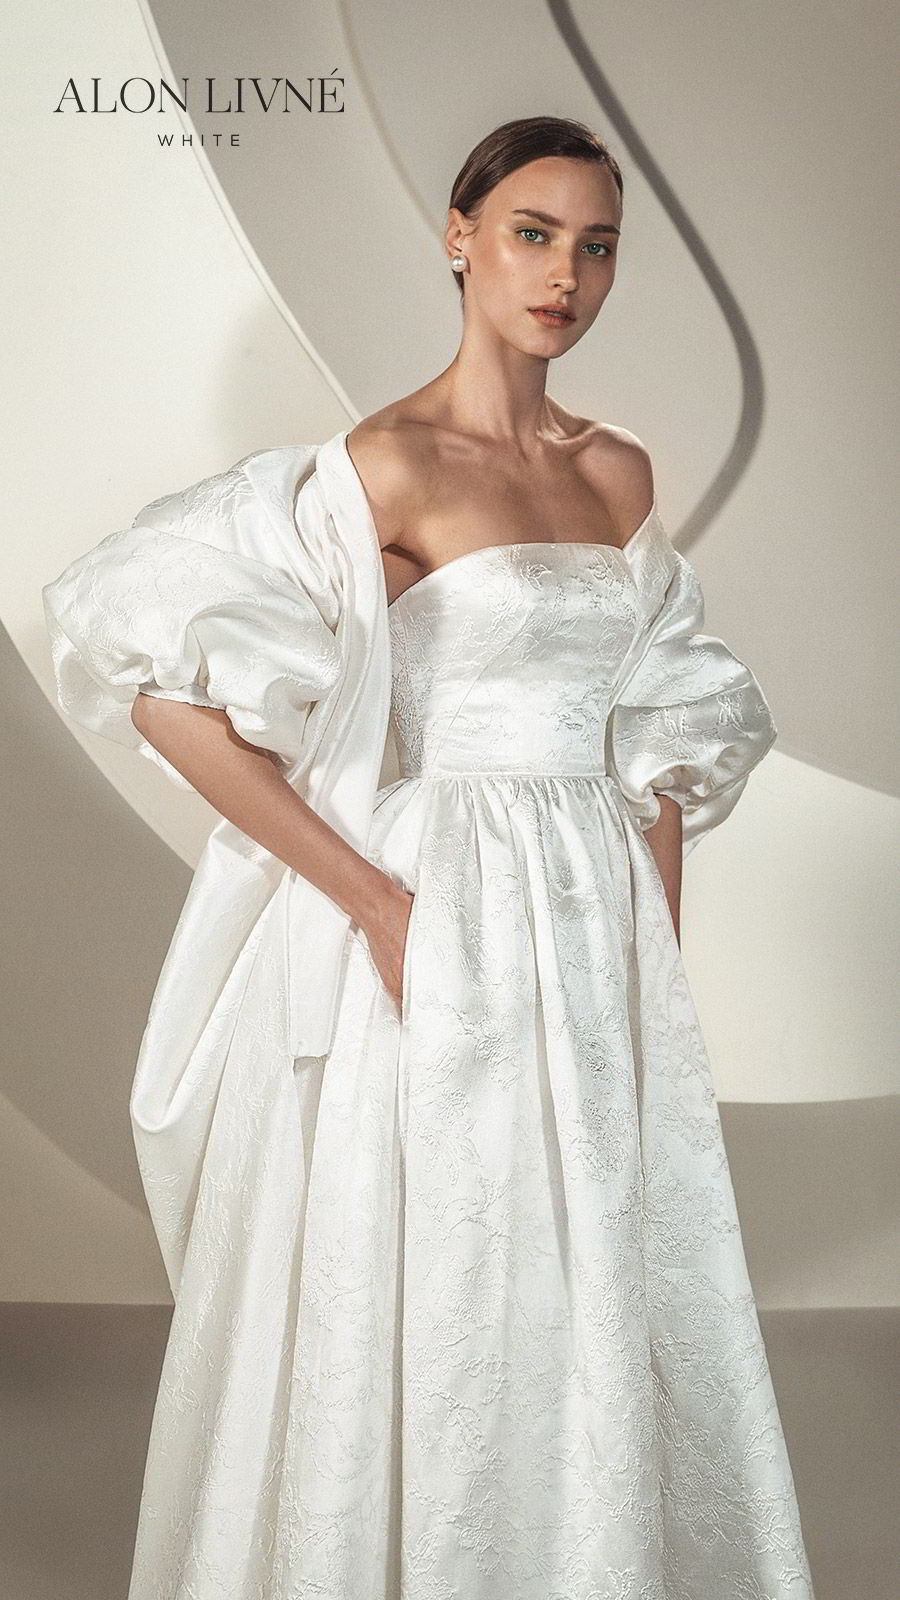 alon livne white spring 2020 bridal strapless straight across a line ball gown embellished simple wedding dress jacket (brenda) elegant modern zv